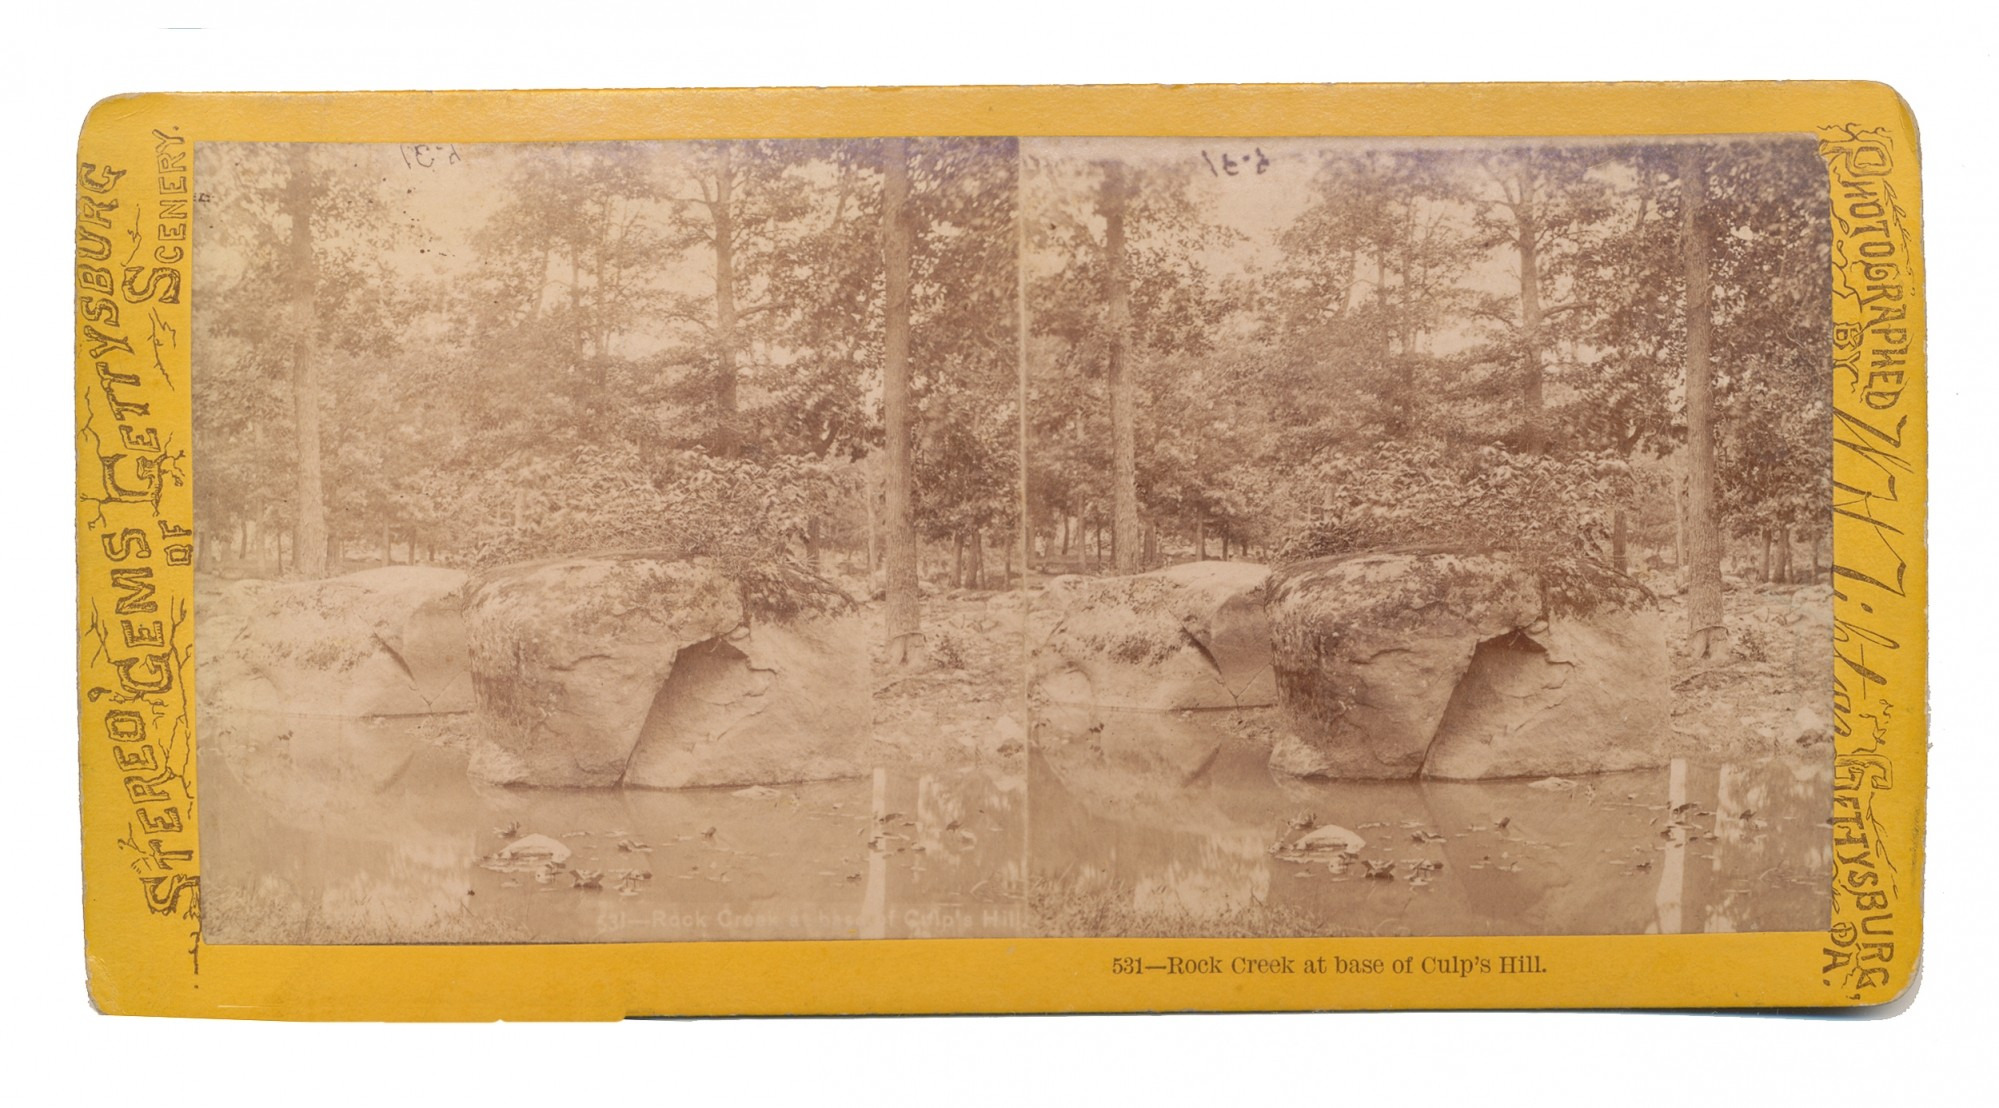 TIPTON STEREO VIEW OF ROCK CREEK